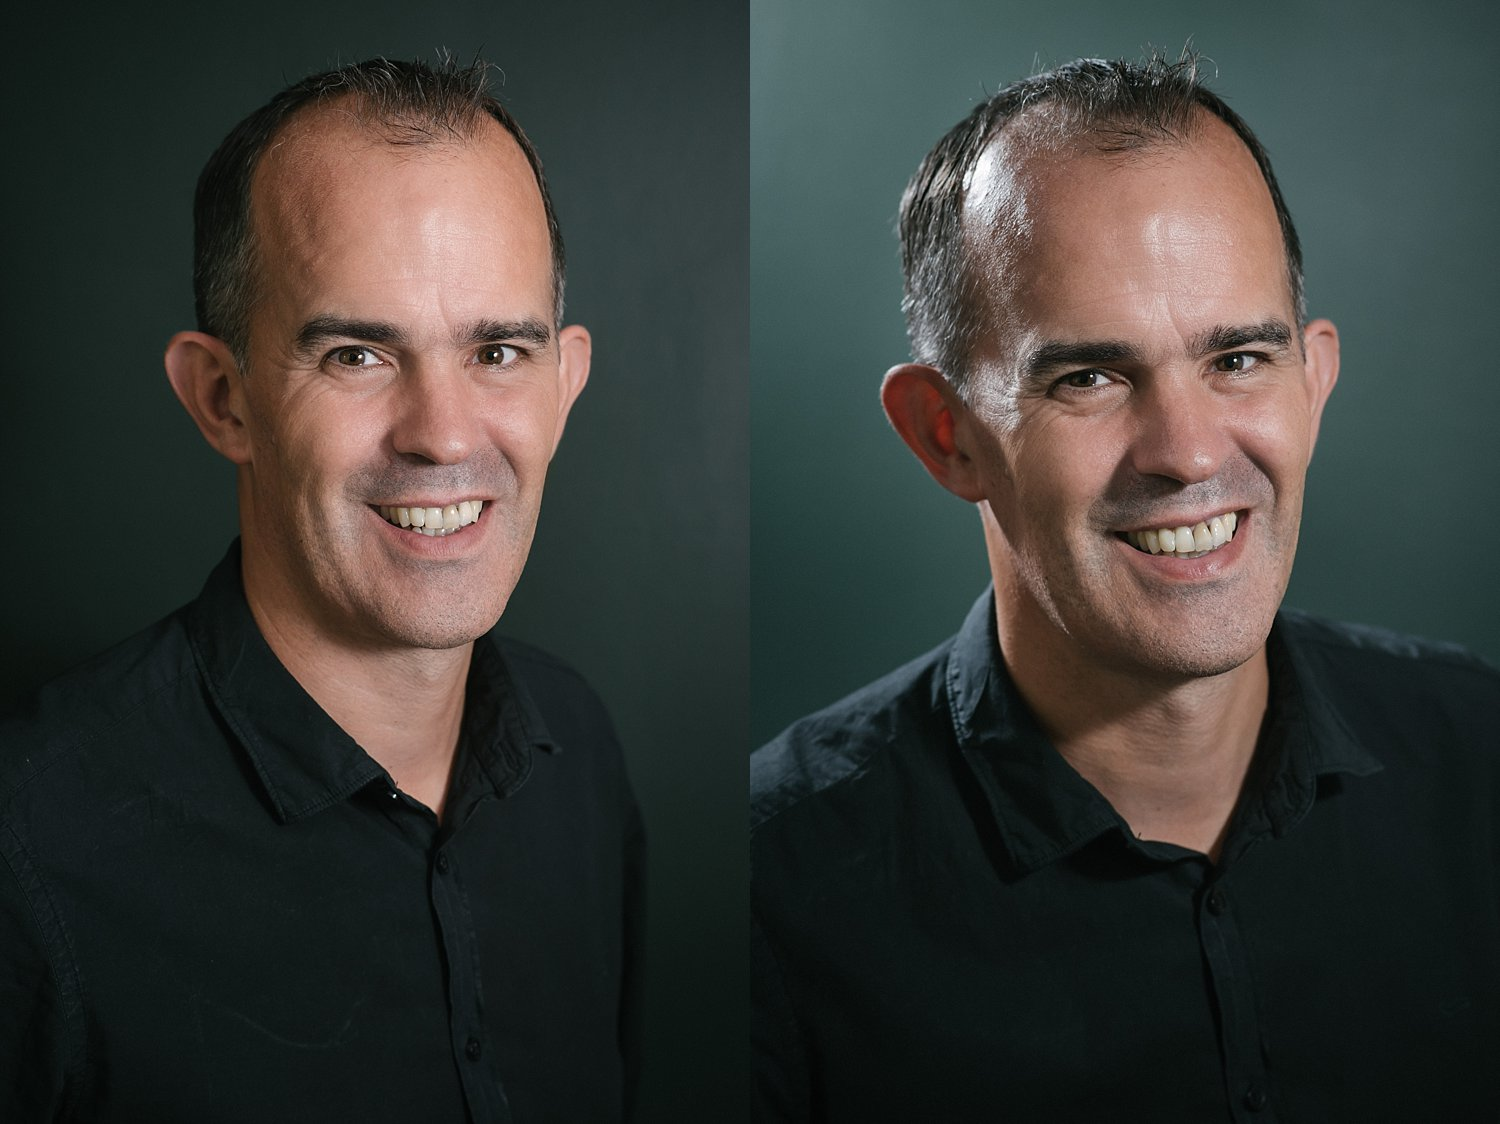 Side-by-side comparison between reflectors and diffusers for portraits